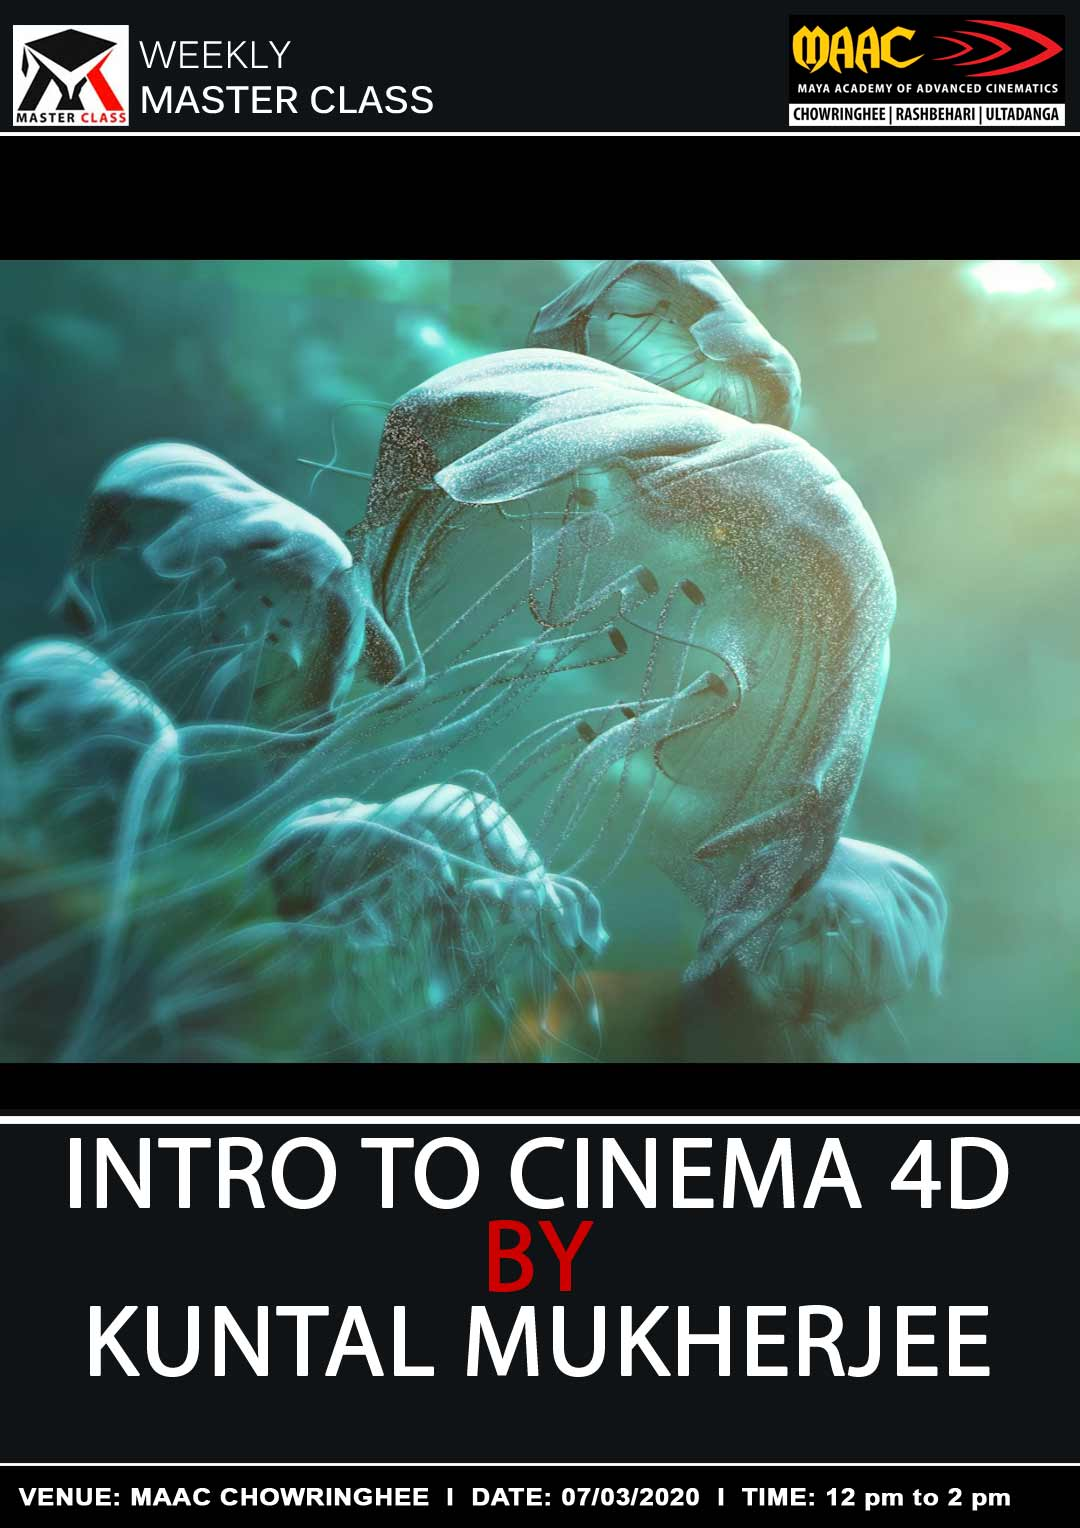 Weekly Master Class on Intro To Cinema 4D